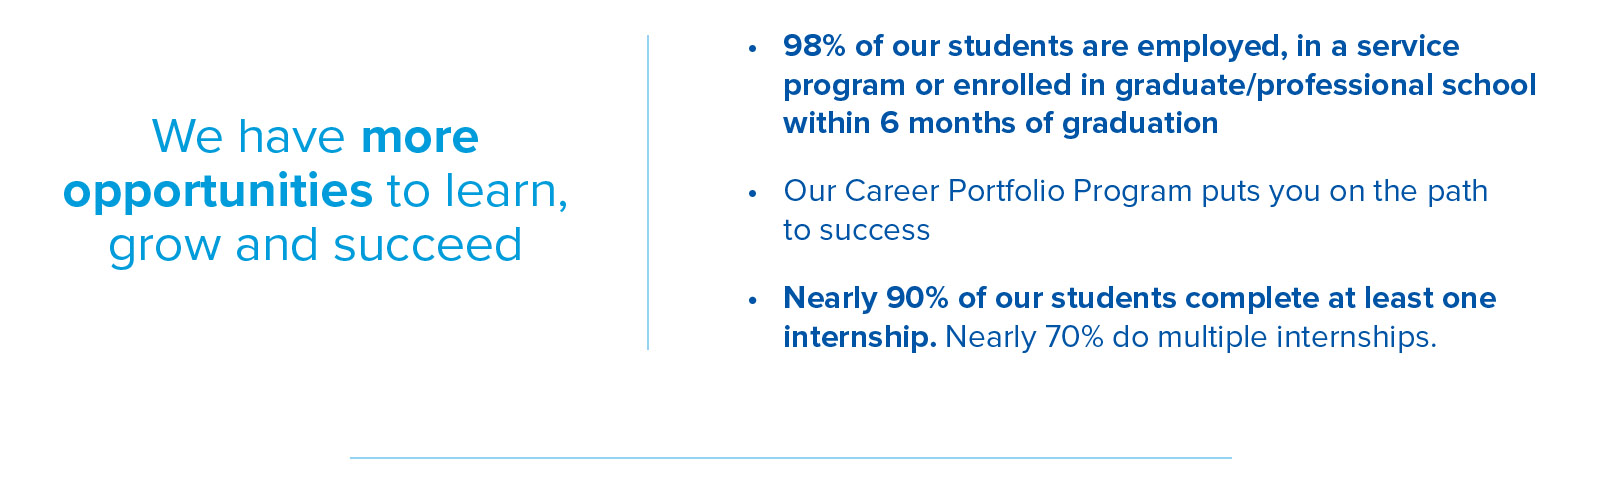 We have more opportunities to learn, grown and succeed. 98% of our students are employed in graduate or professional school within 6 months of graduation. Our Career Portfolio Program equals success. Nearly 90% of students complete one internship